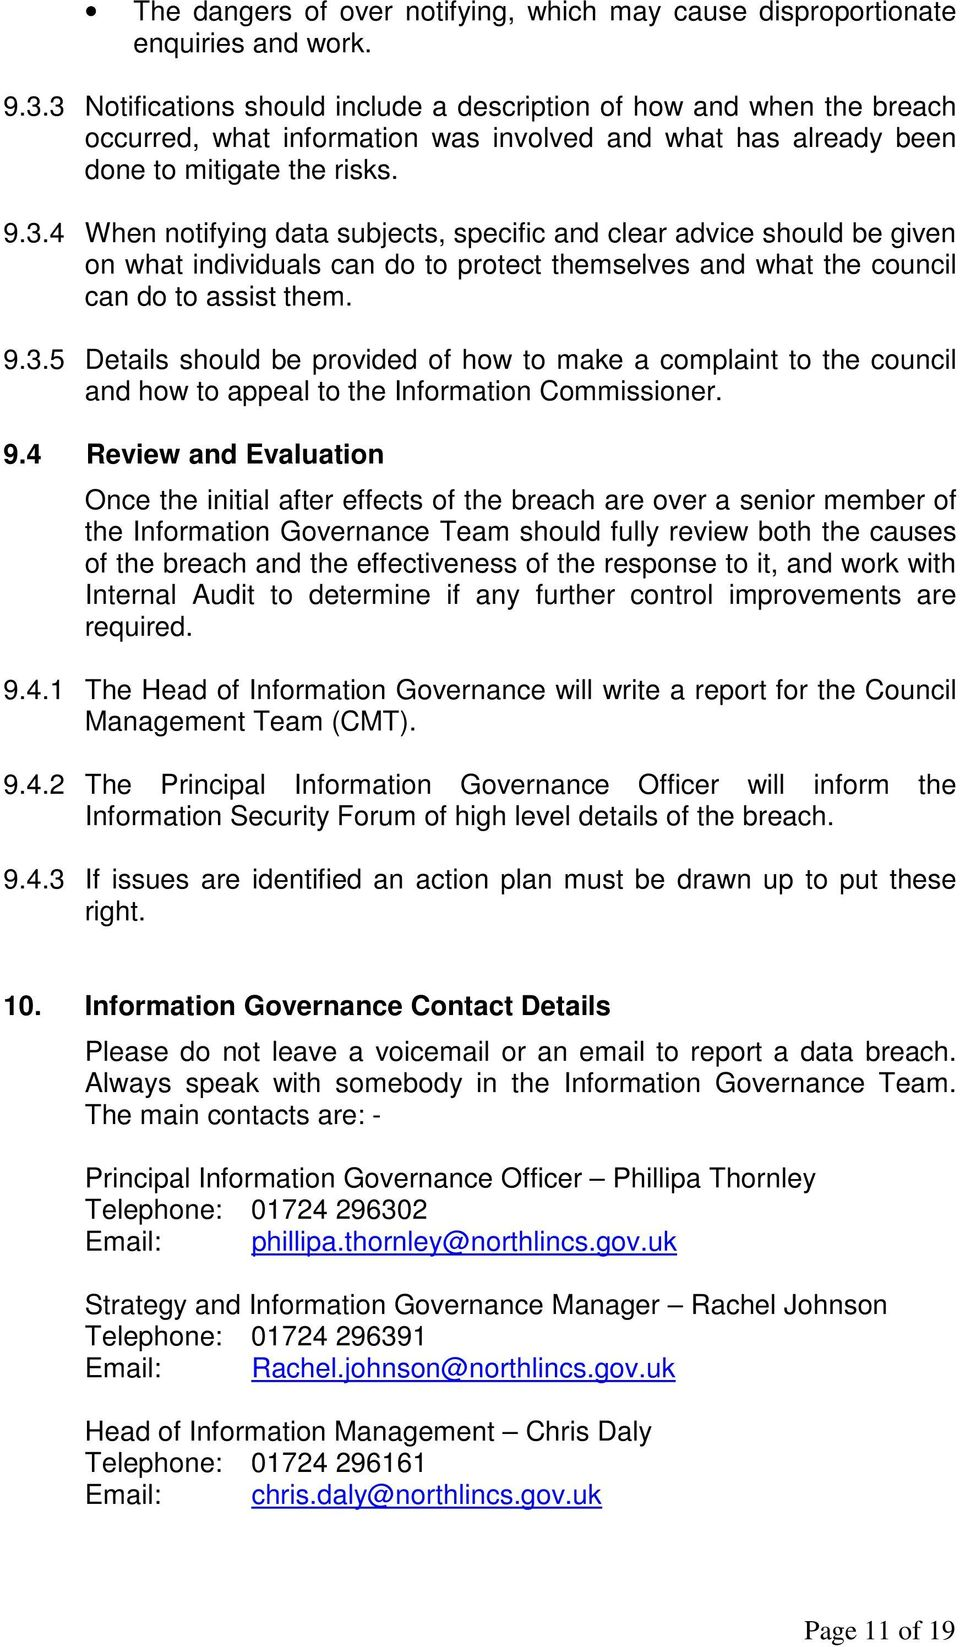 9.3.5 Details should be provided of how to make a complaint to the council and how to appeal to the Information Commissioner. 9.